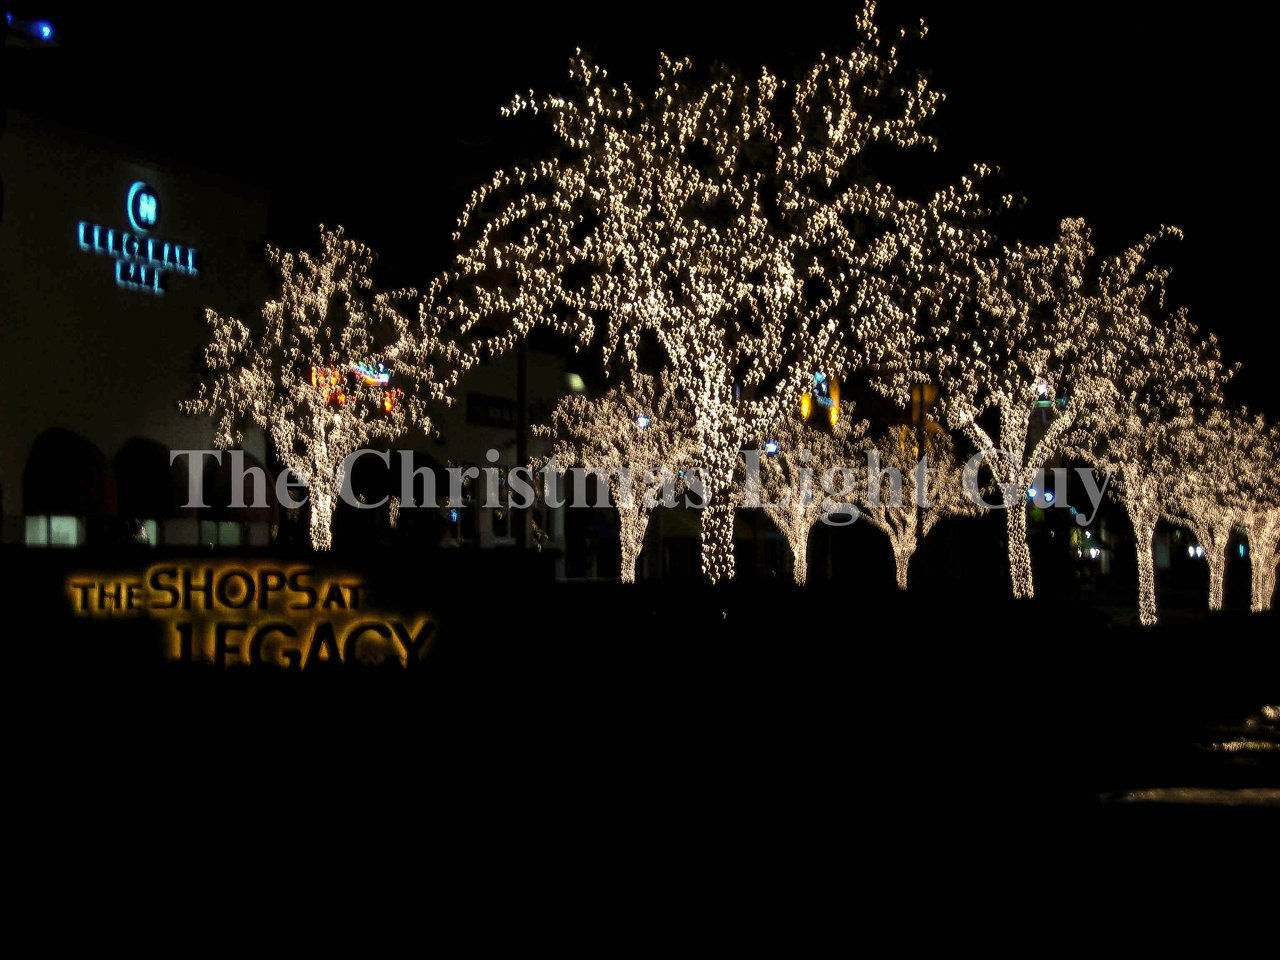 The Shops At Legacy  sc 1 st  The Christmas Light Guy & Christmas Light Installers Commercial Christmas Light ... azcodes.com